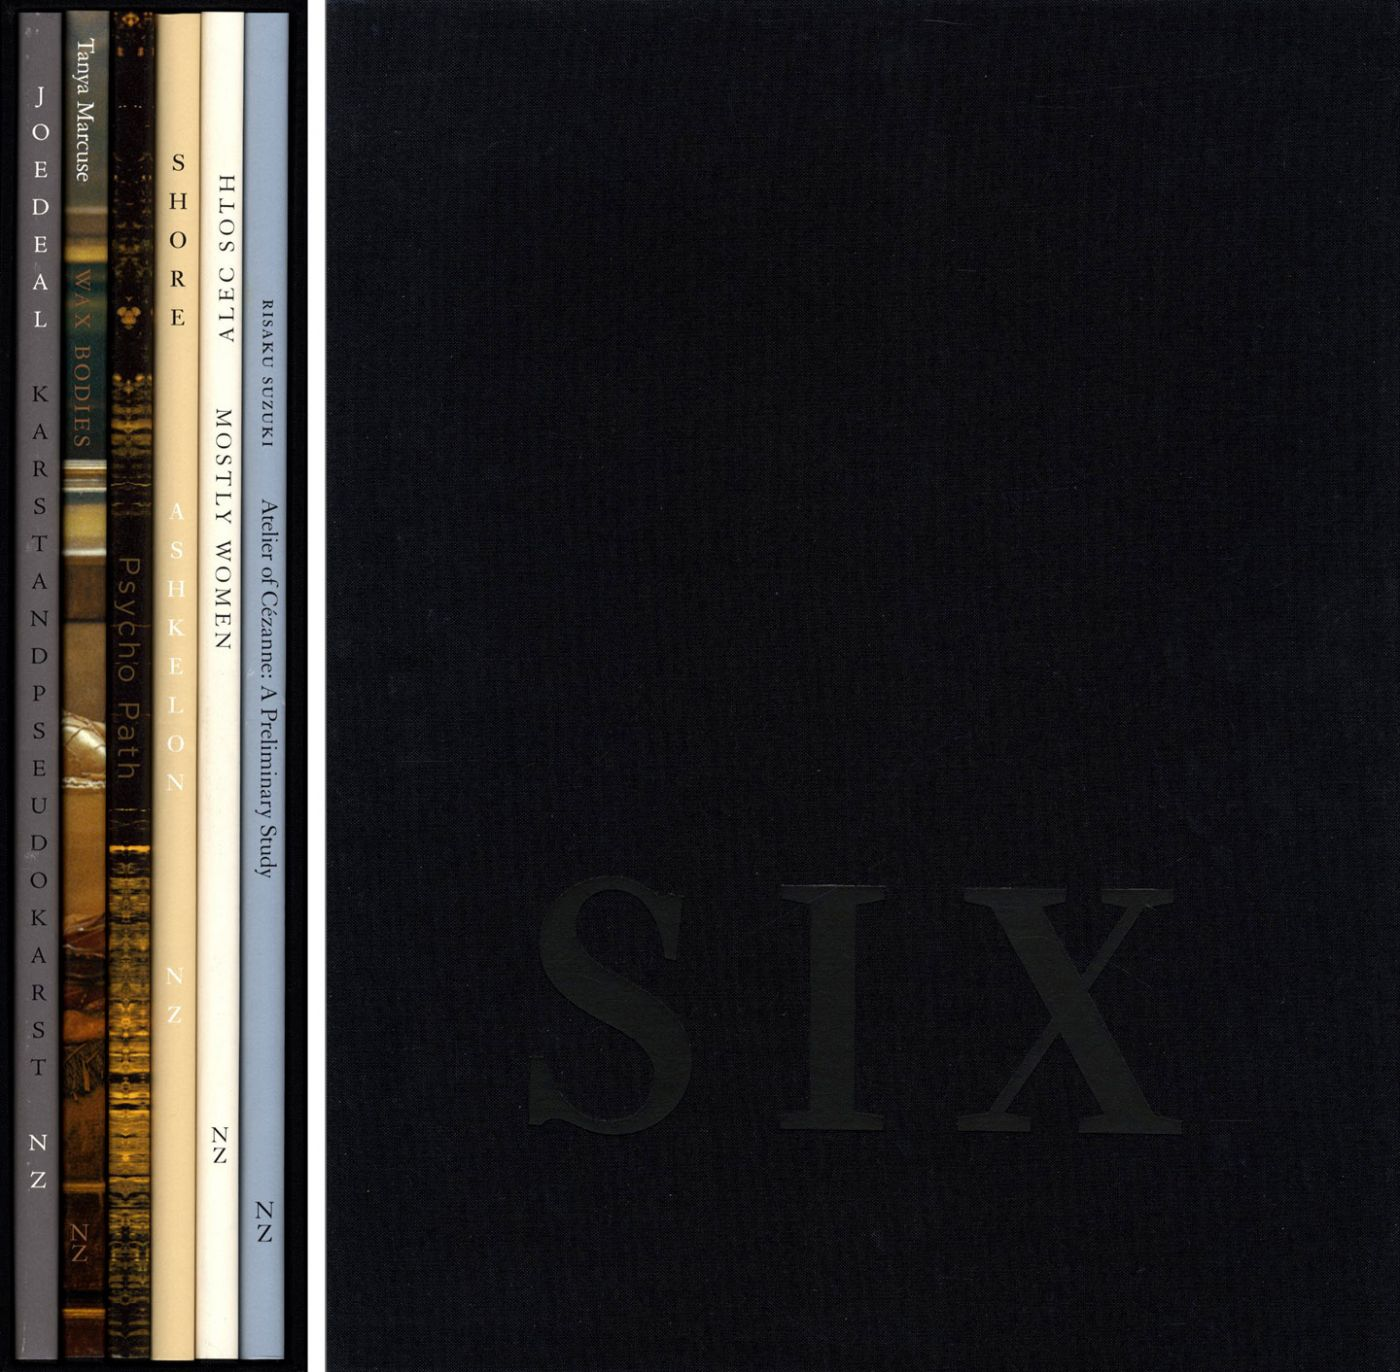 Nazraeli Press Six by Six (6 x 6) Subscription Series: Set 2 (of 6), Limited Edition (with 7 Prints): Joe Deal: Karst and Pseudokarst; Tanya Marcuse: Wax Bodies; Joe Mills: Psycho Path; Stephen Shore: Askelon; Alec Soth: Mostly Women; Risaku Suzuki: Atelier of Cézanne